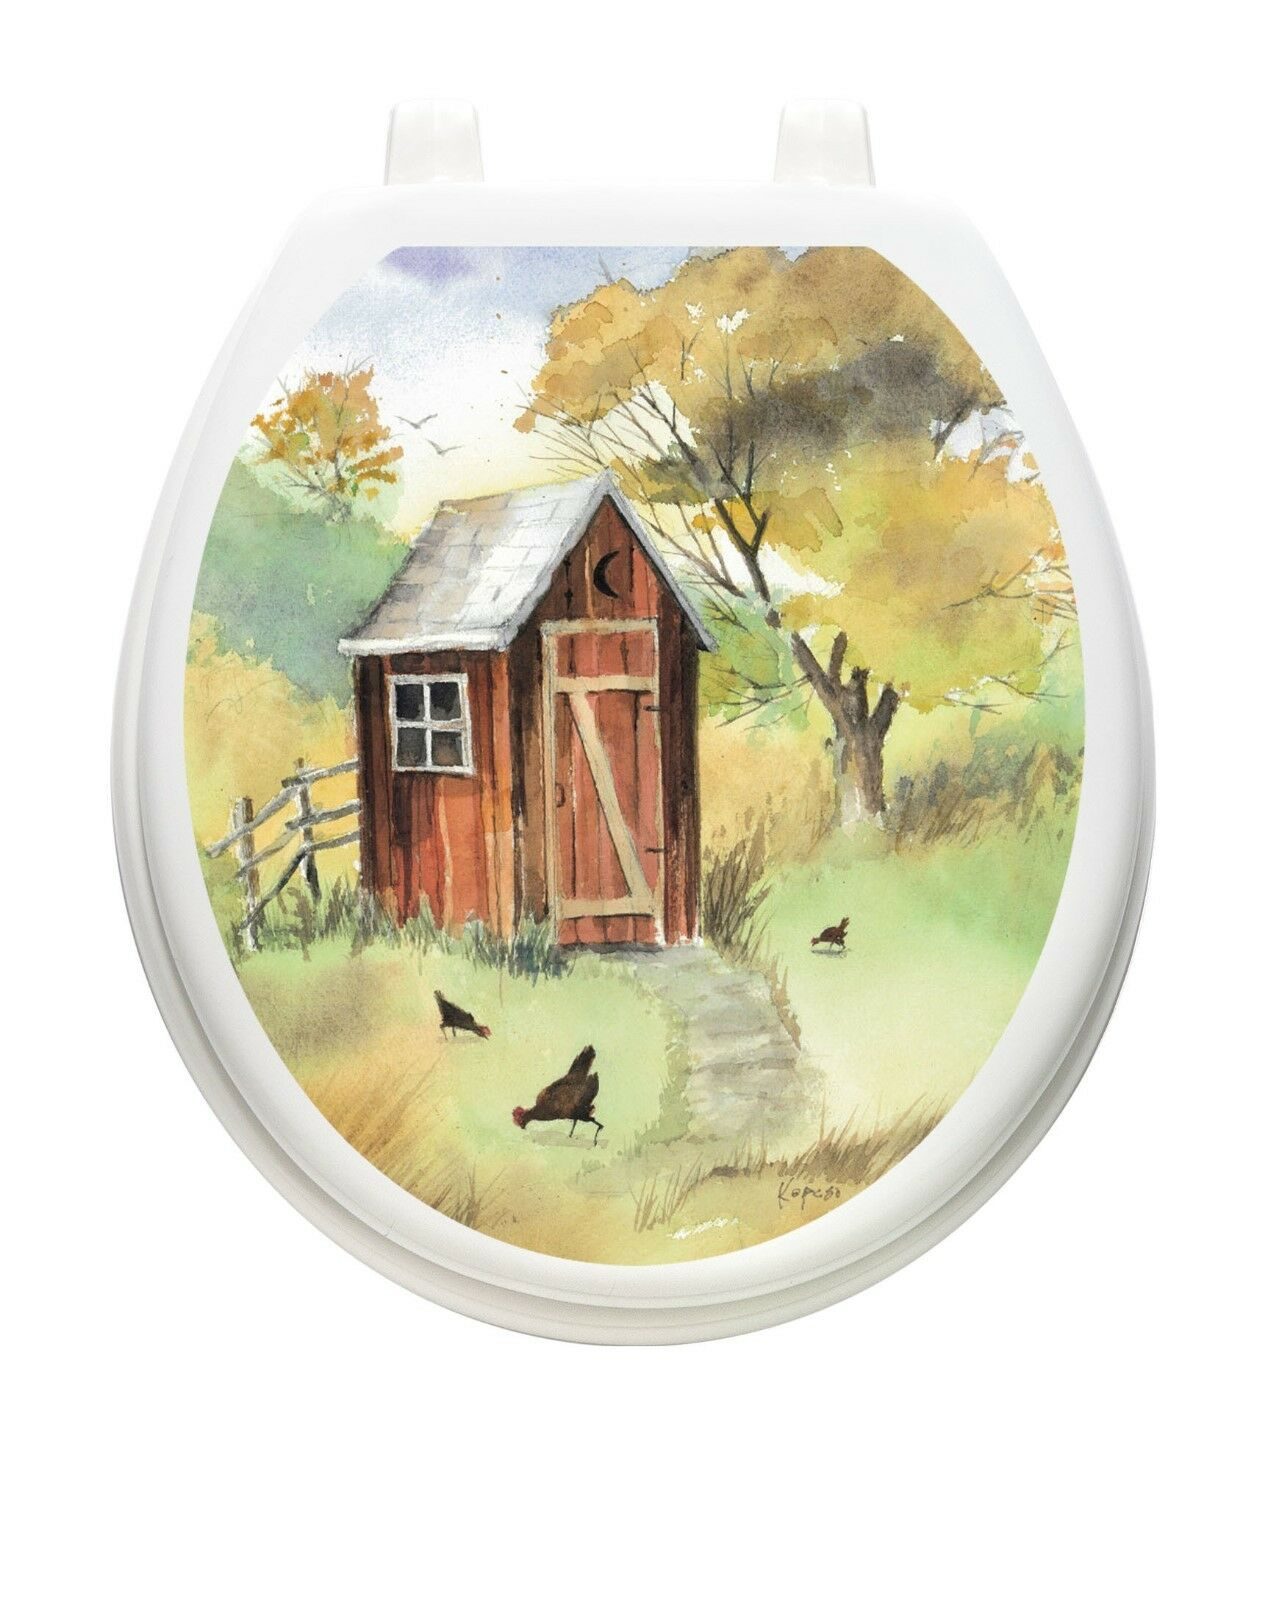 Toilet Tattoos Themes Watercolor Outhouse Toilet Seat Decal | eBay